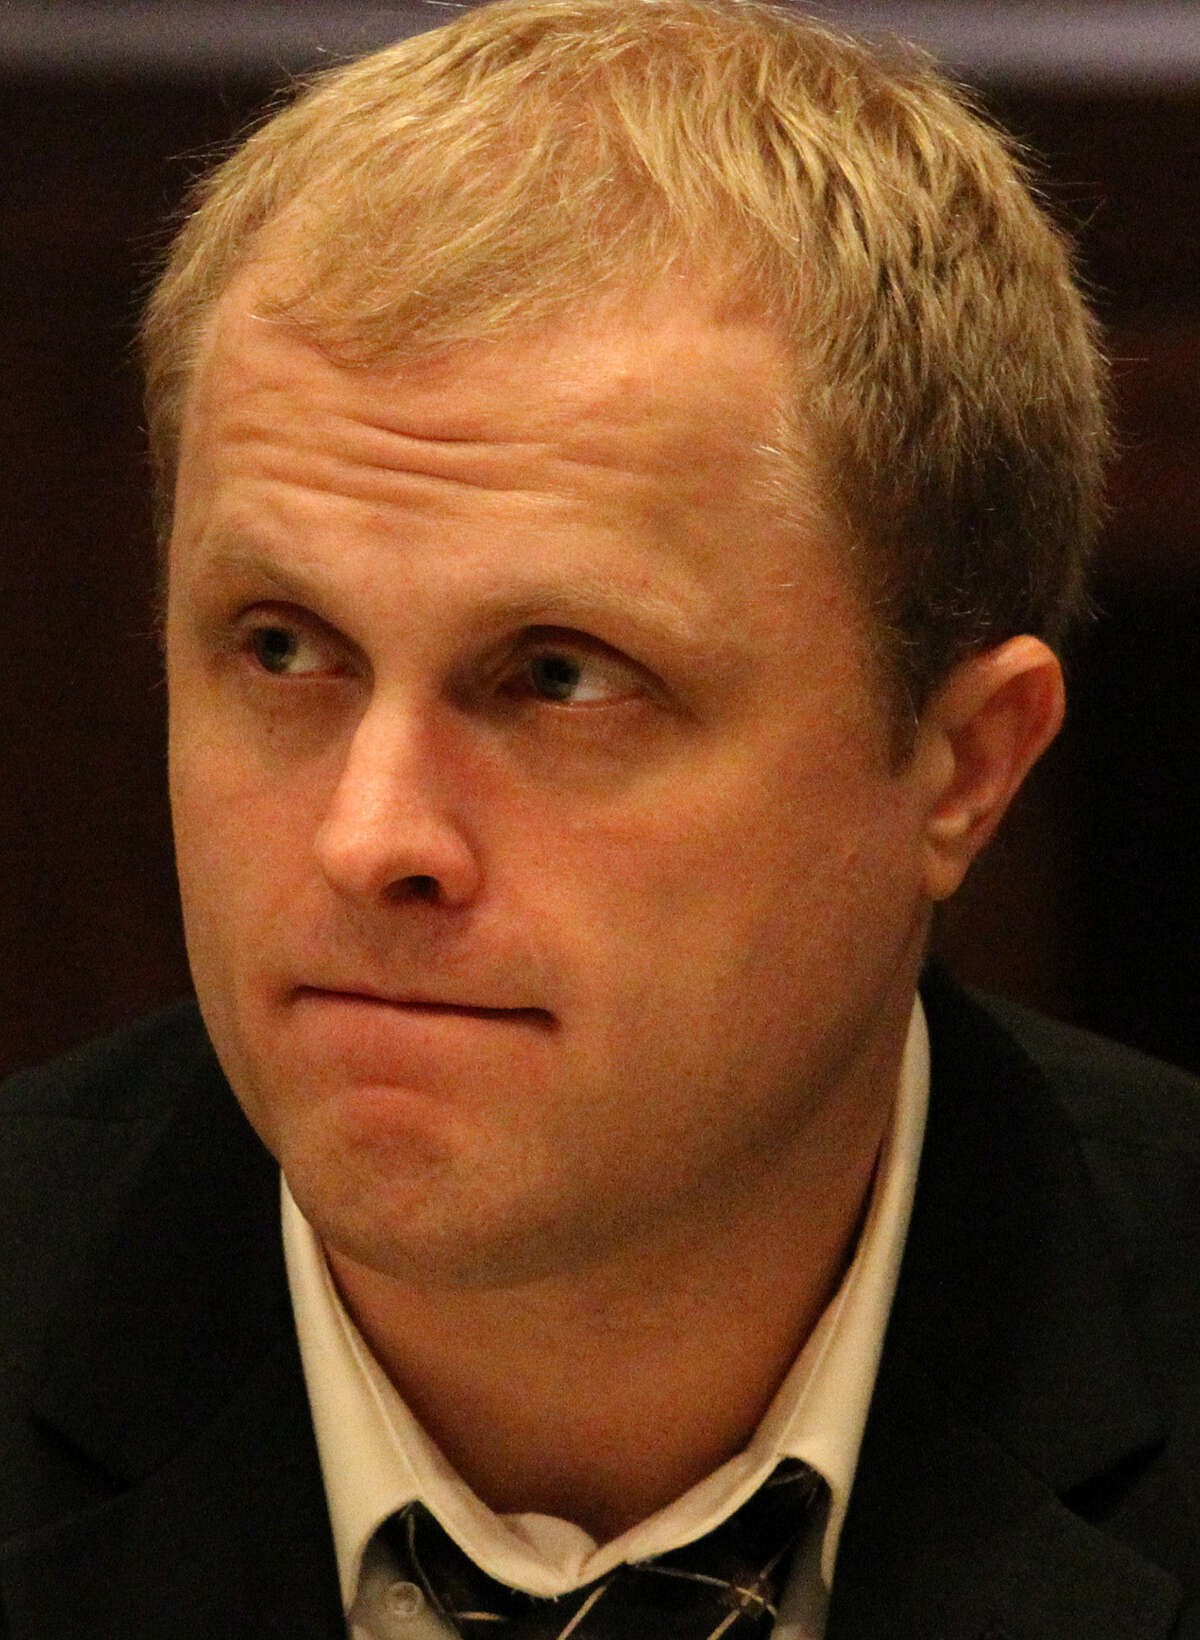 Jeffrey Eugene Theisen's punishment could range from two to 20 years in prison, or probation.